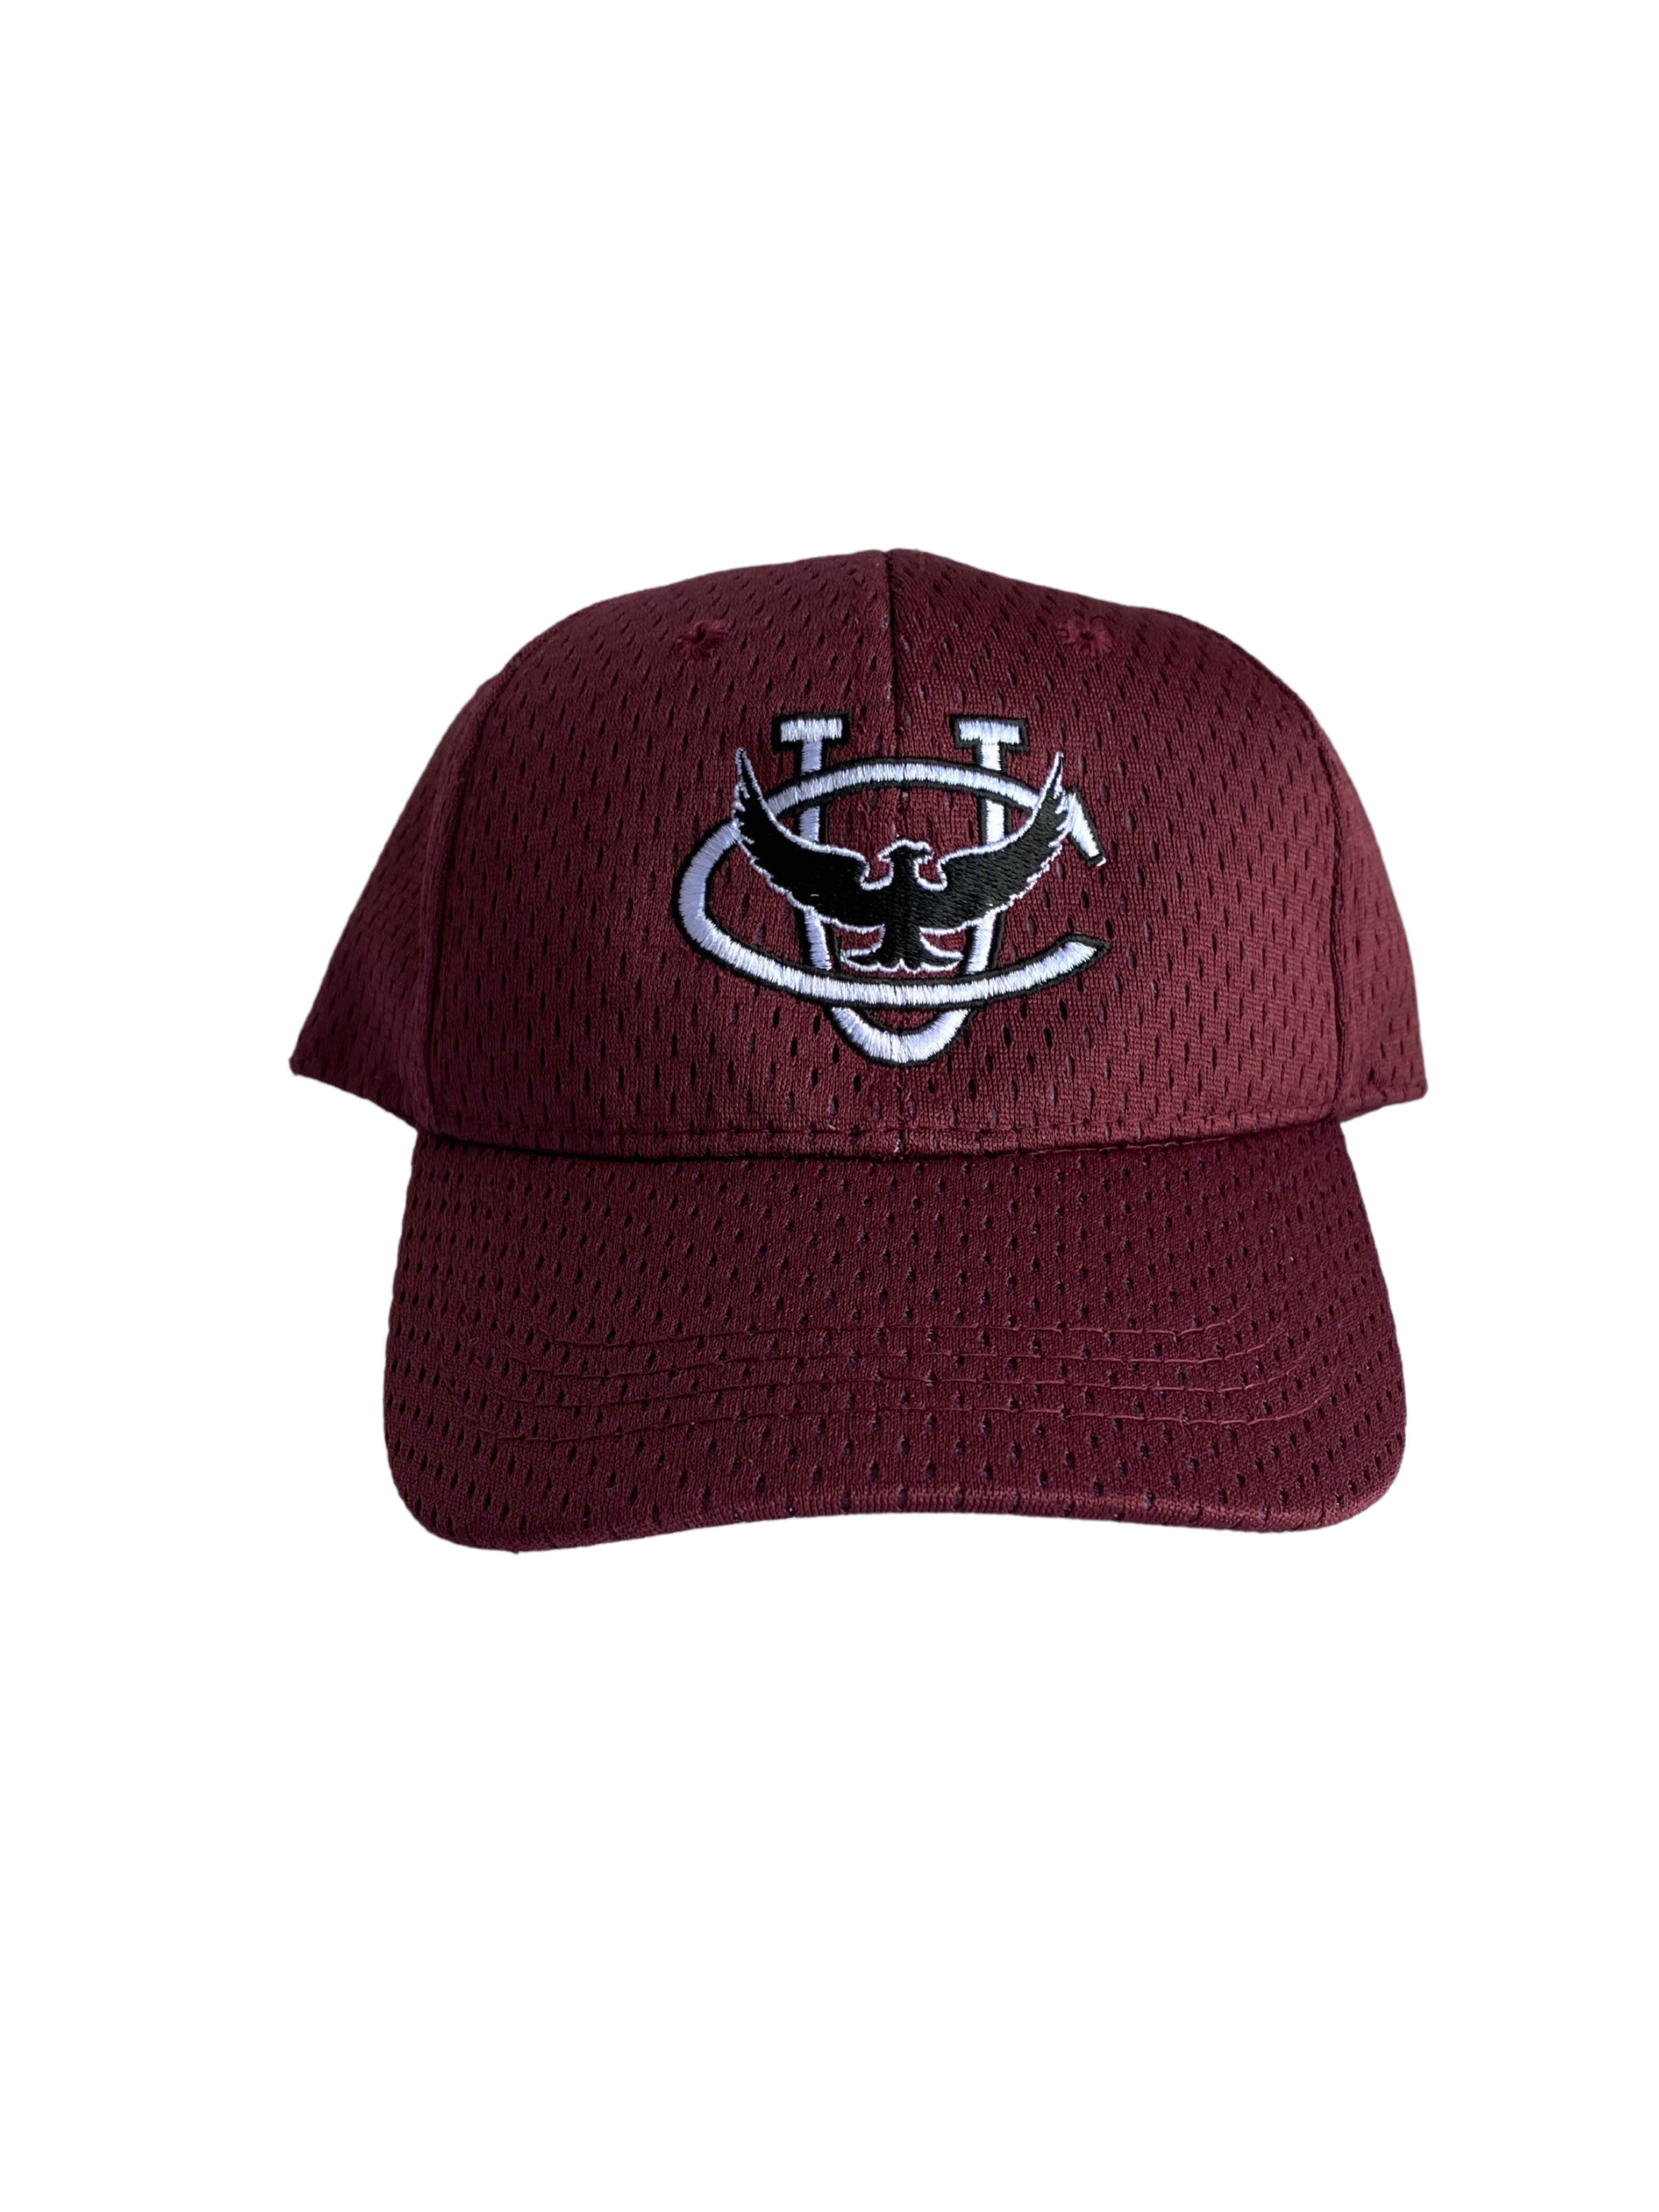 Cumberland Youth Mesh Hat